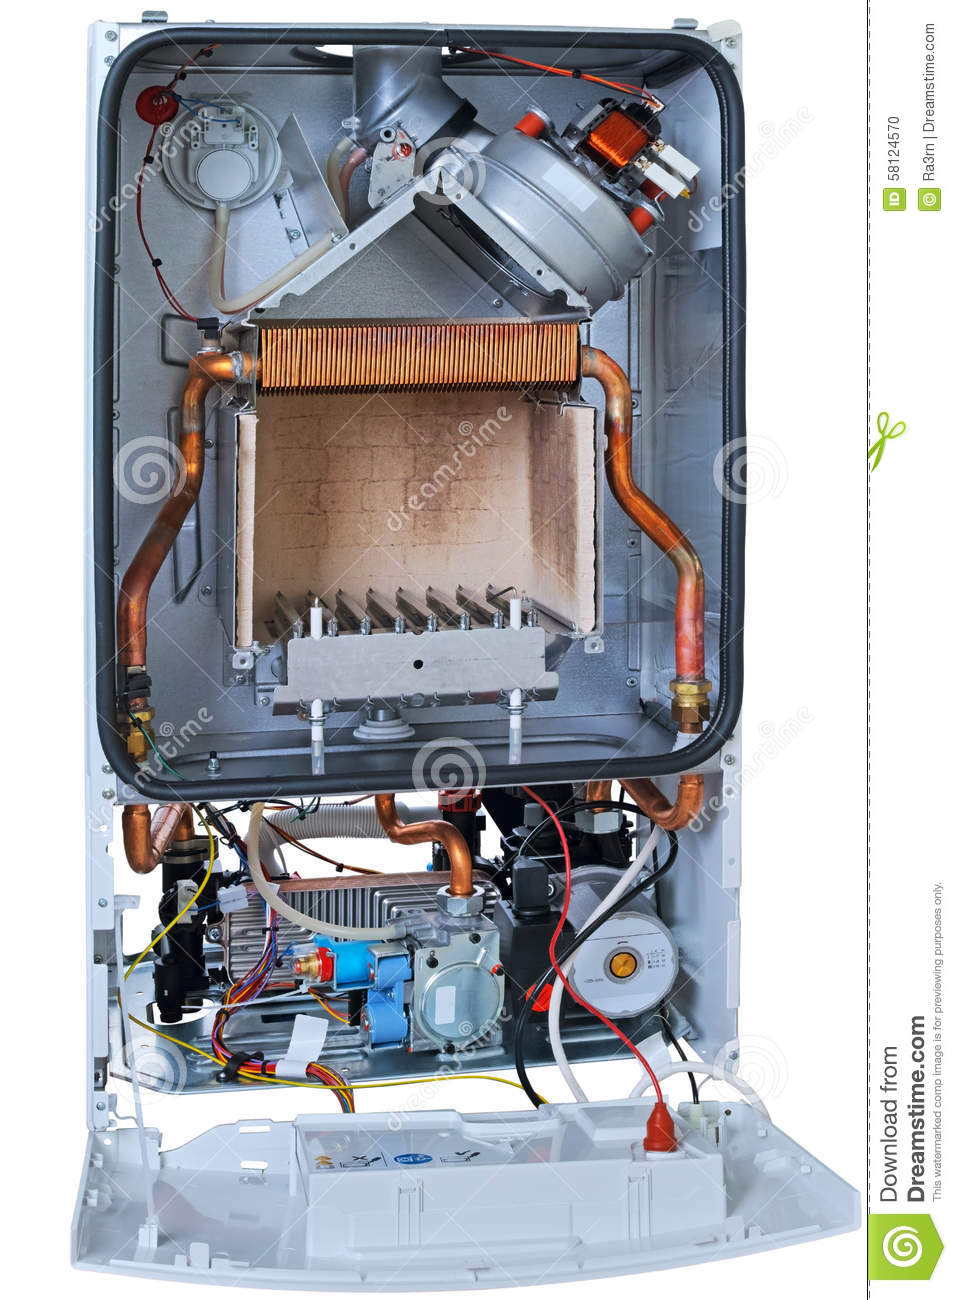 New Gas Boiler Without Front Cover Stock Photo - Image of background ...